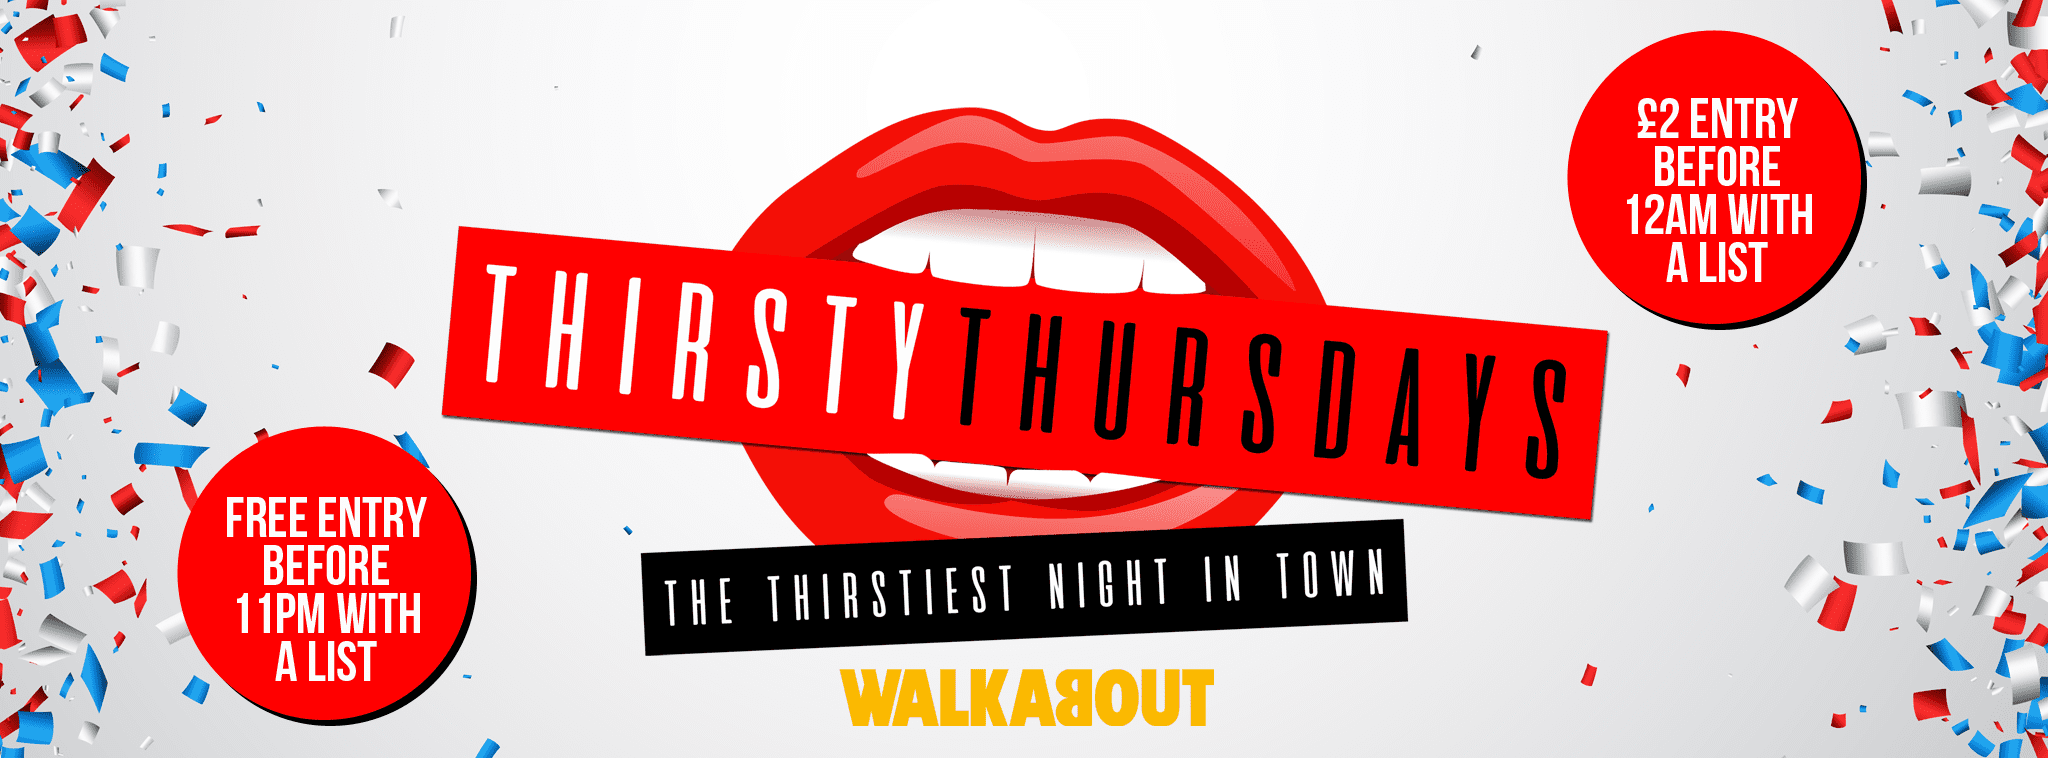 Walkabout Thirsty Thursdays